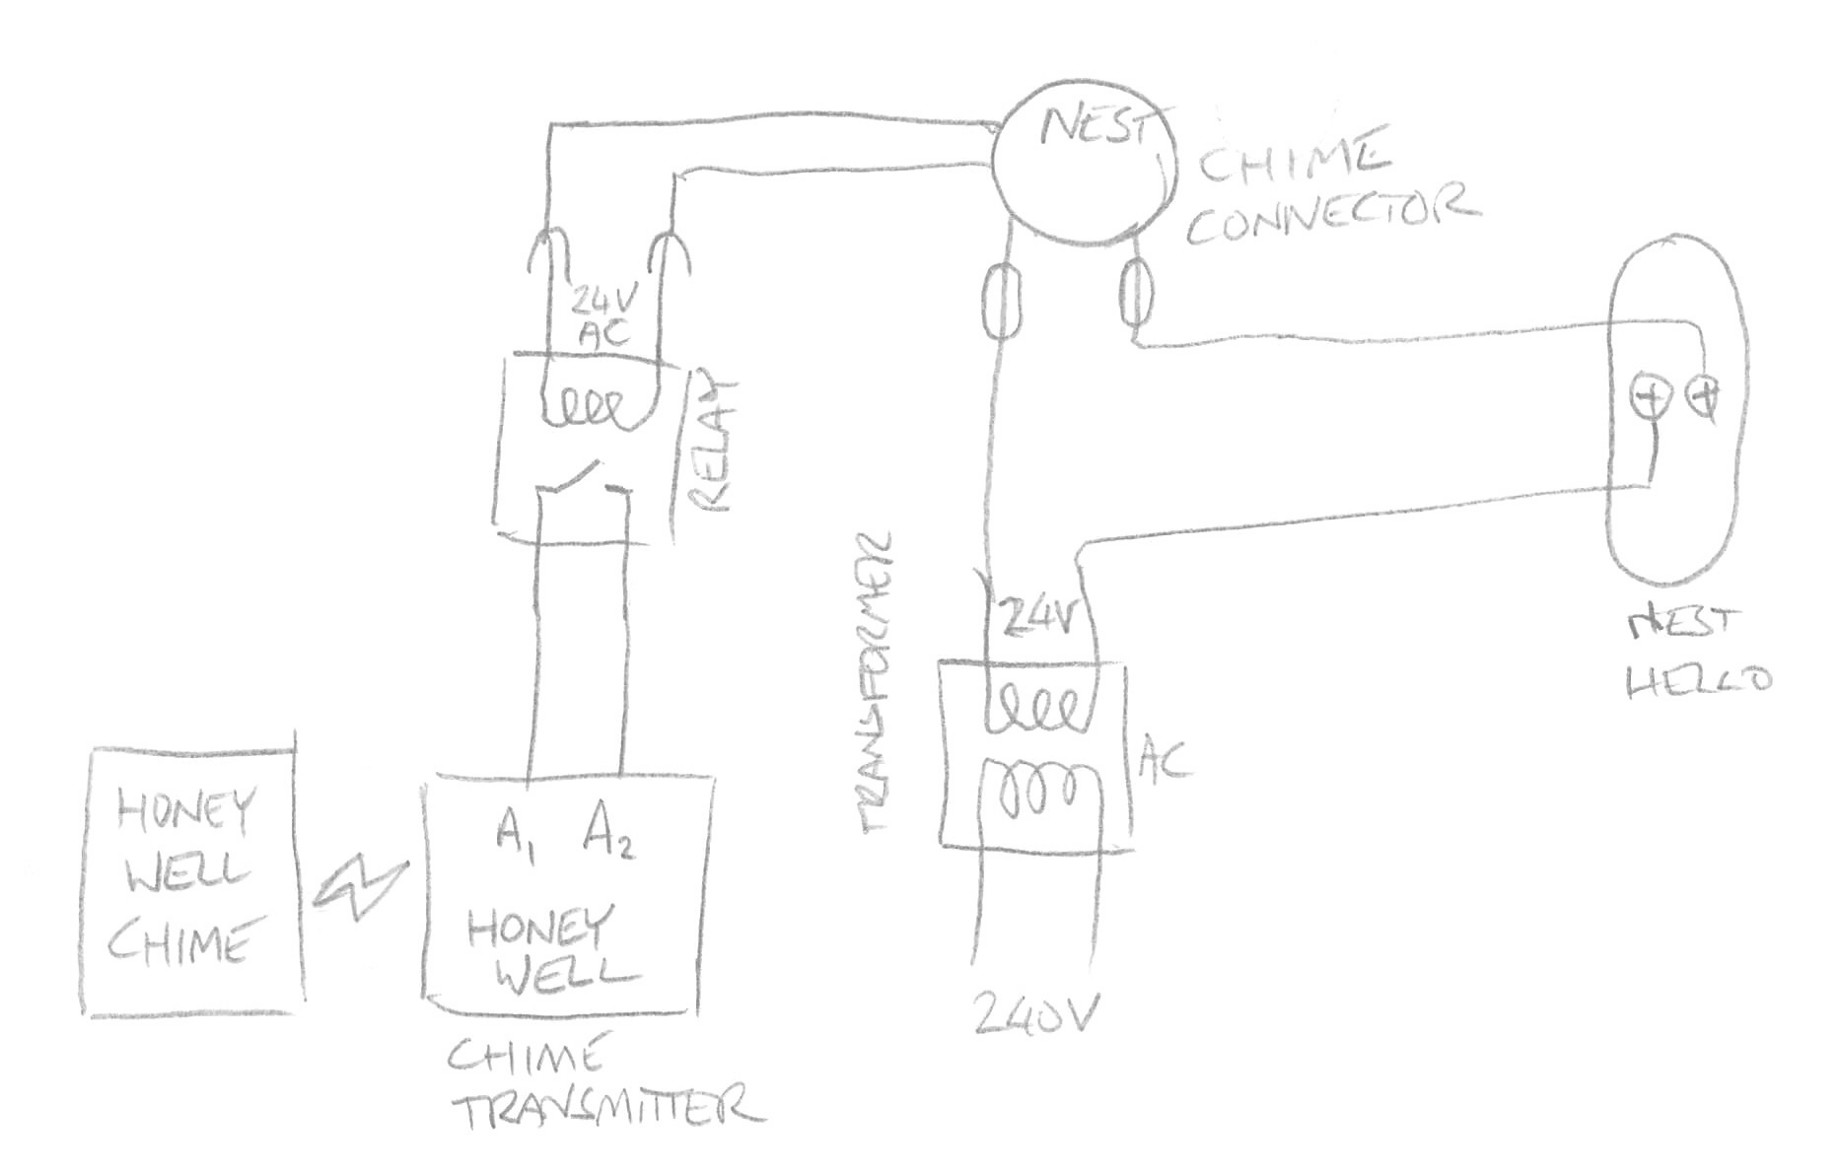 Nest Hello Wiring Diagram